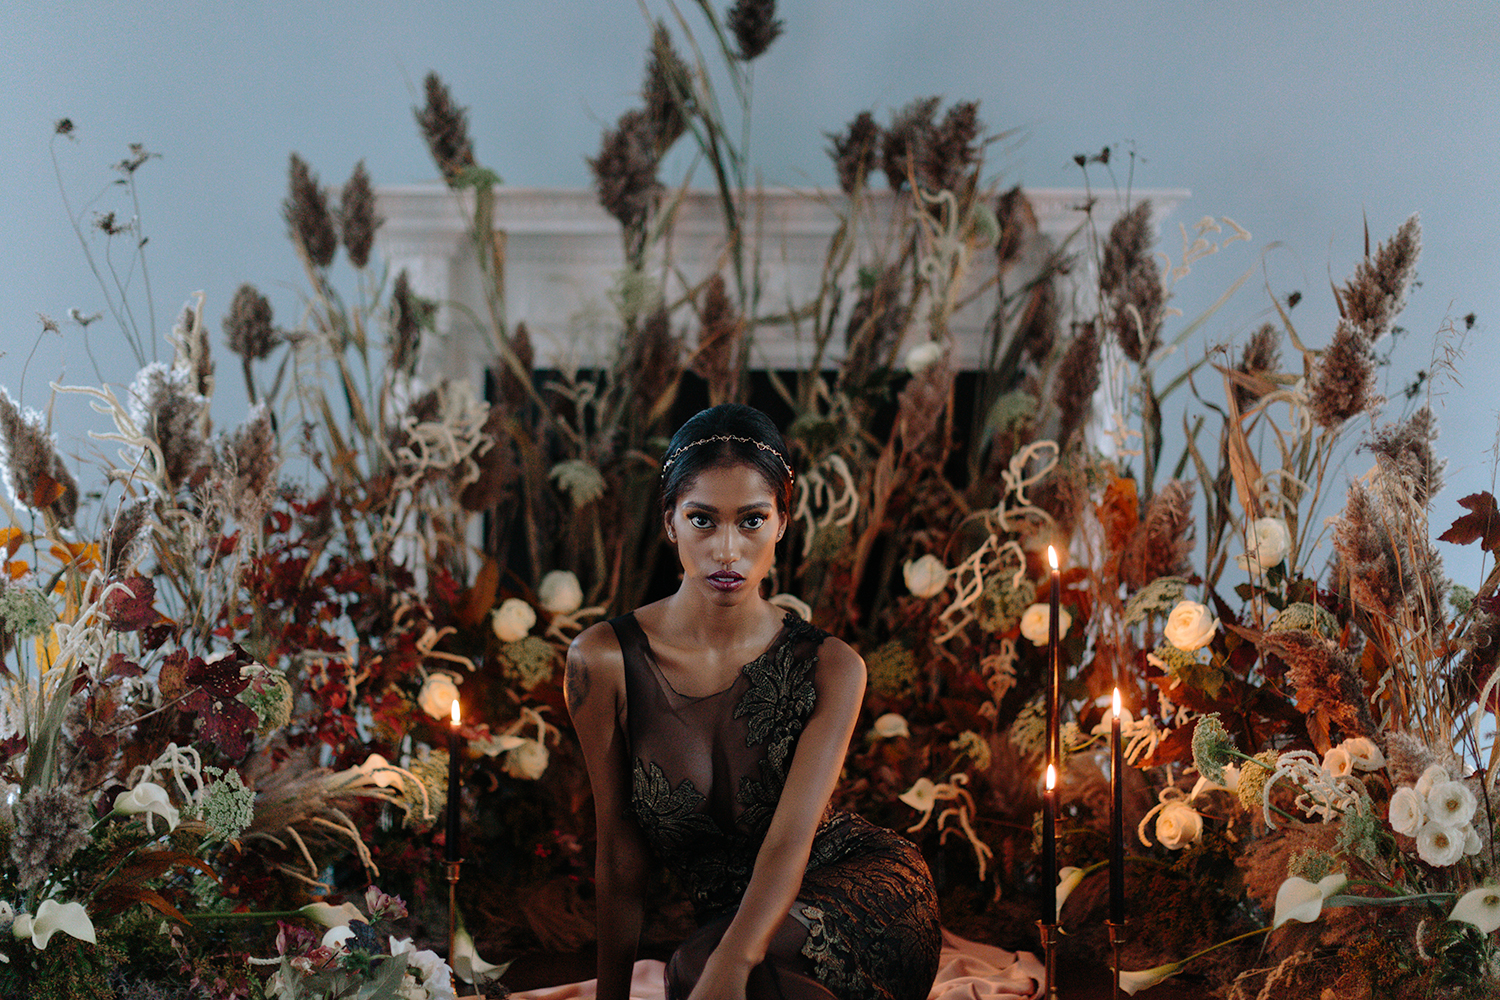 ryanne-hollies-photography-campbell-house-stylized-shoot-ballroom-floral-floor-alter-black-bride-narces-gown-beyonce-fine-art-artistic-creative-portrait-stunning-model-candlelight-inspiration-wedding-witchcraft.jpg